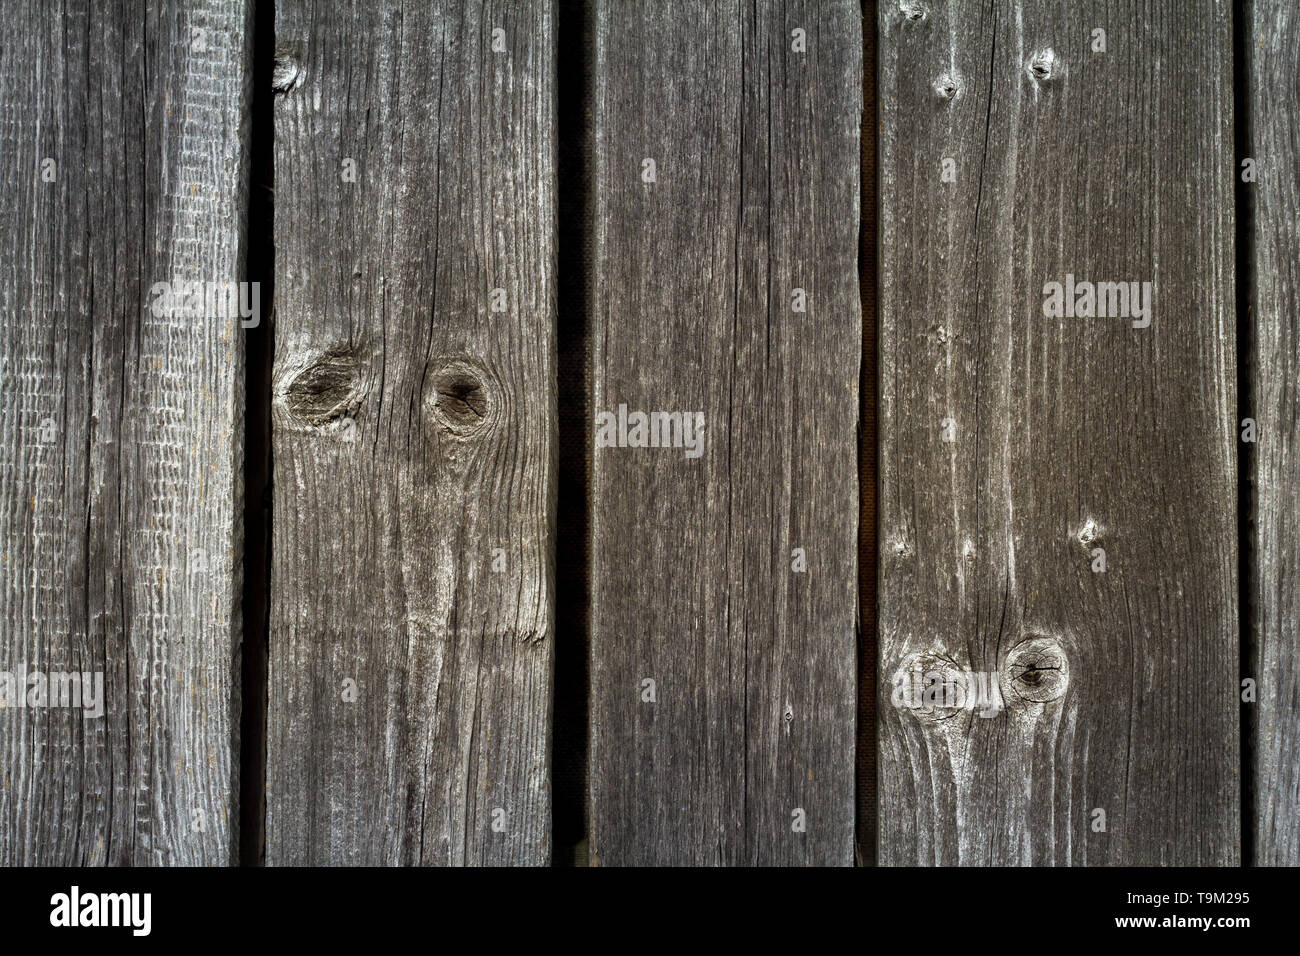 Dirty Wood Furniture Stock Photos & Dirty Wood Furniture ...